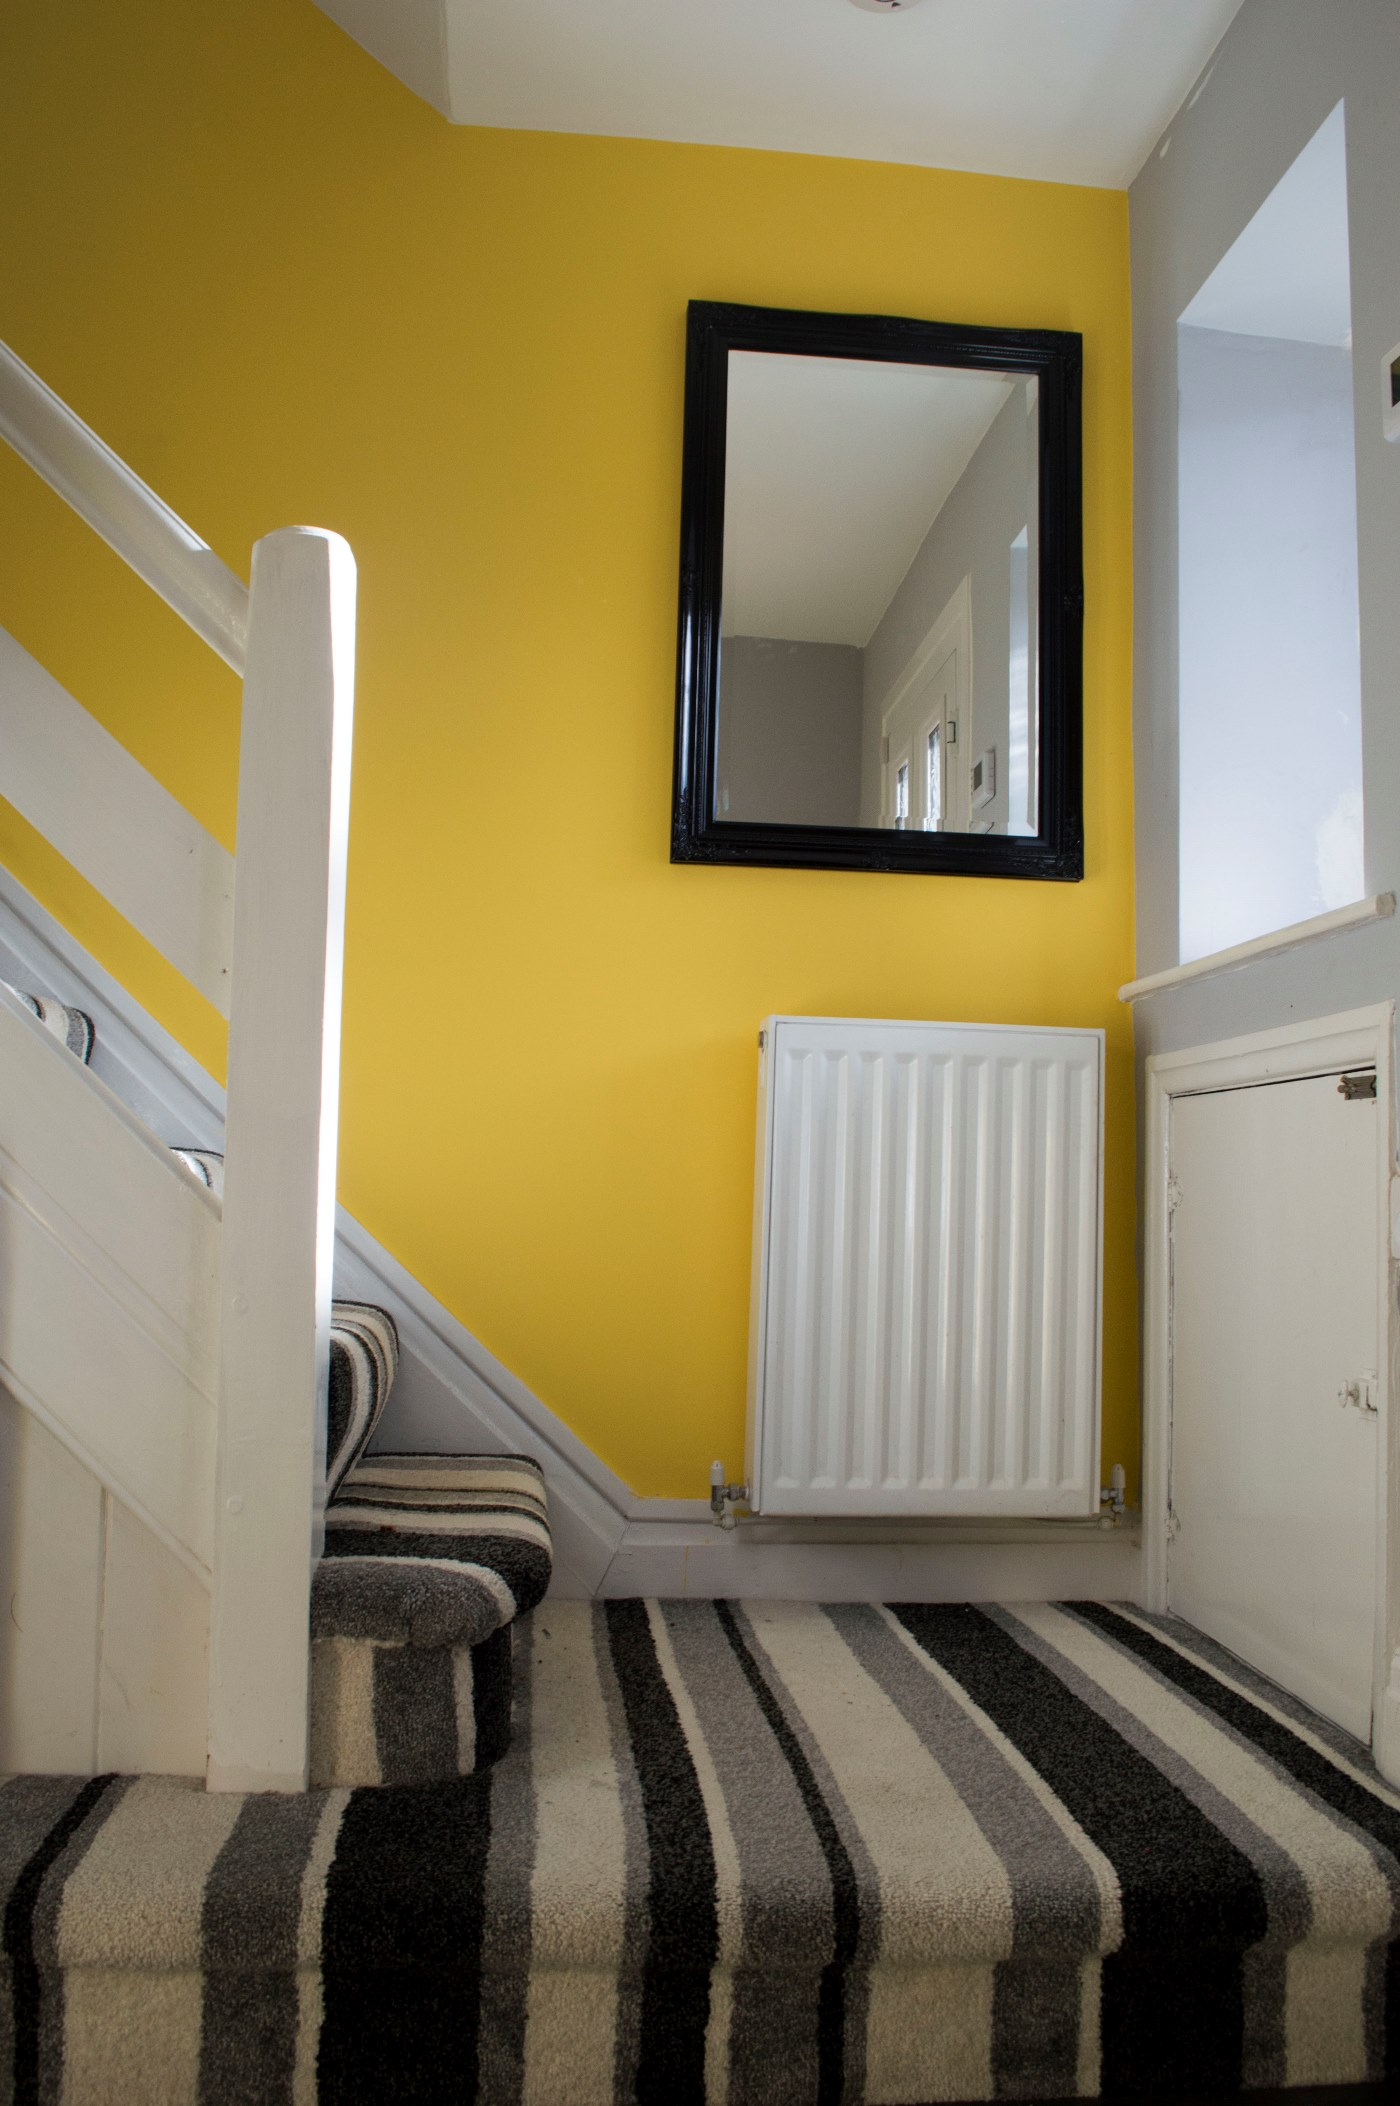 free photo yellow hallway moved yellow light free download